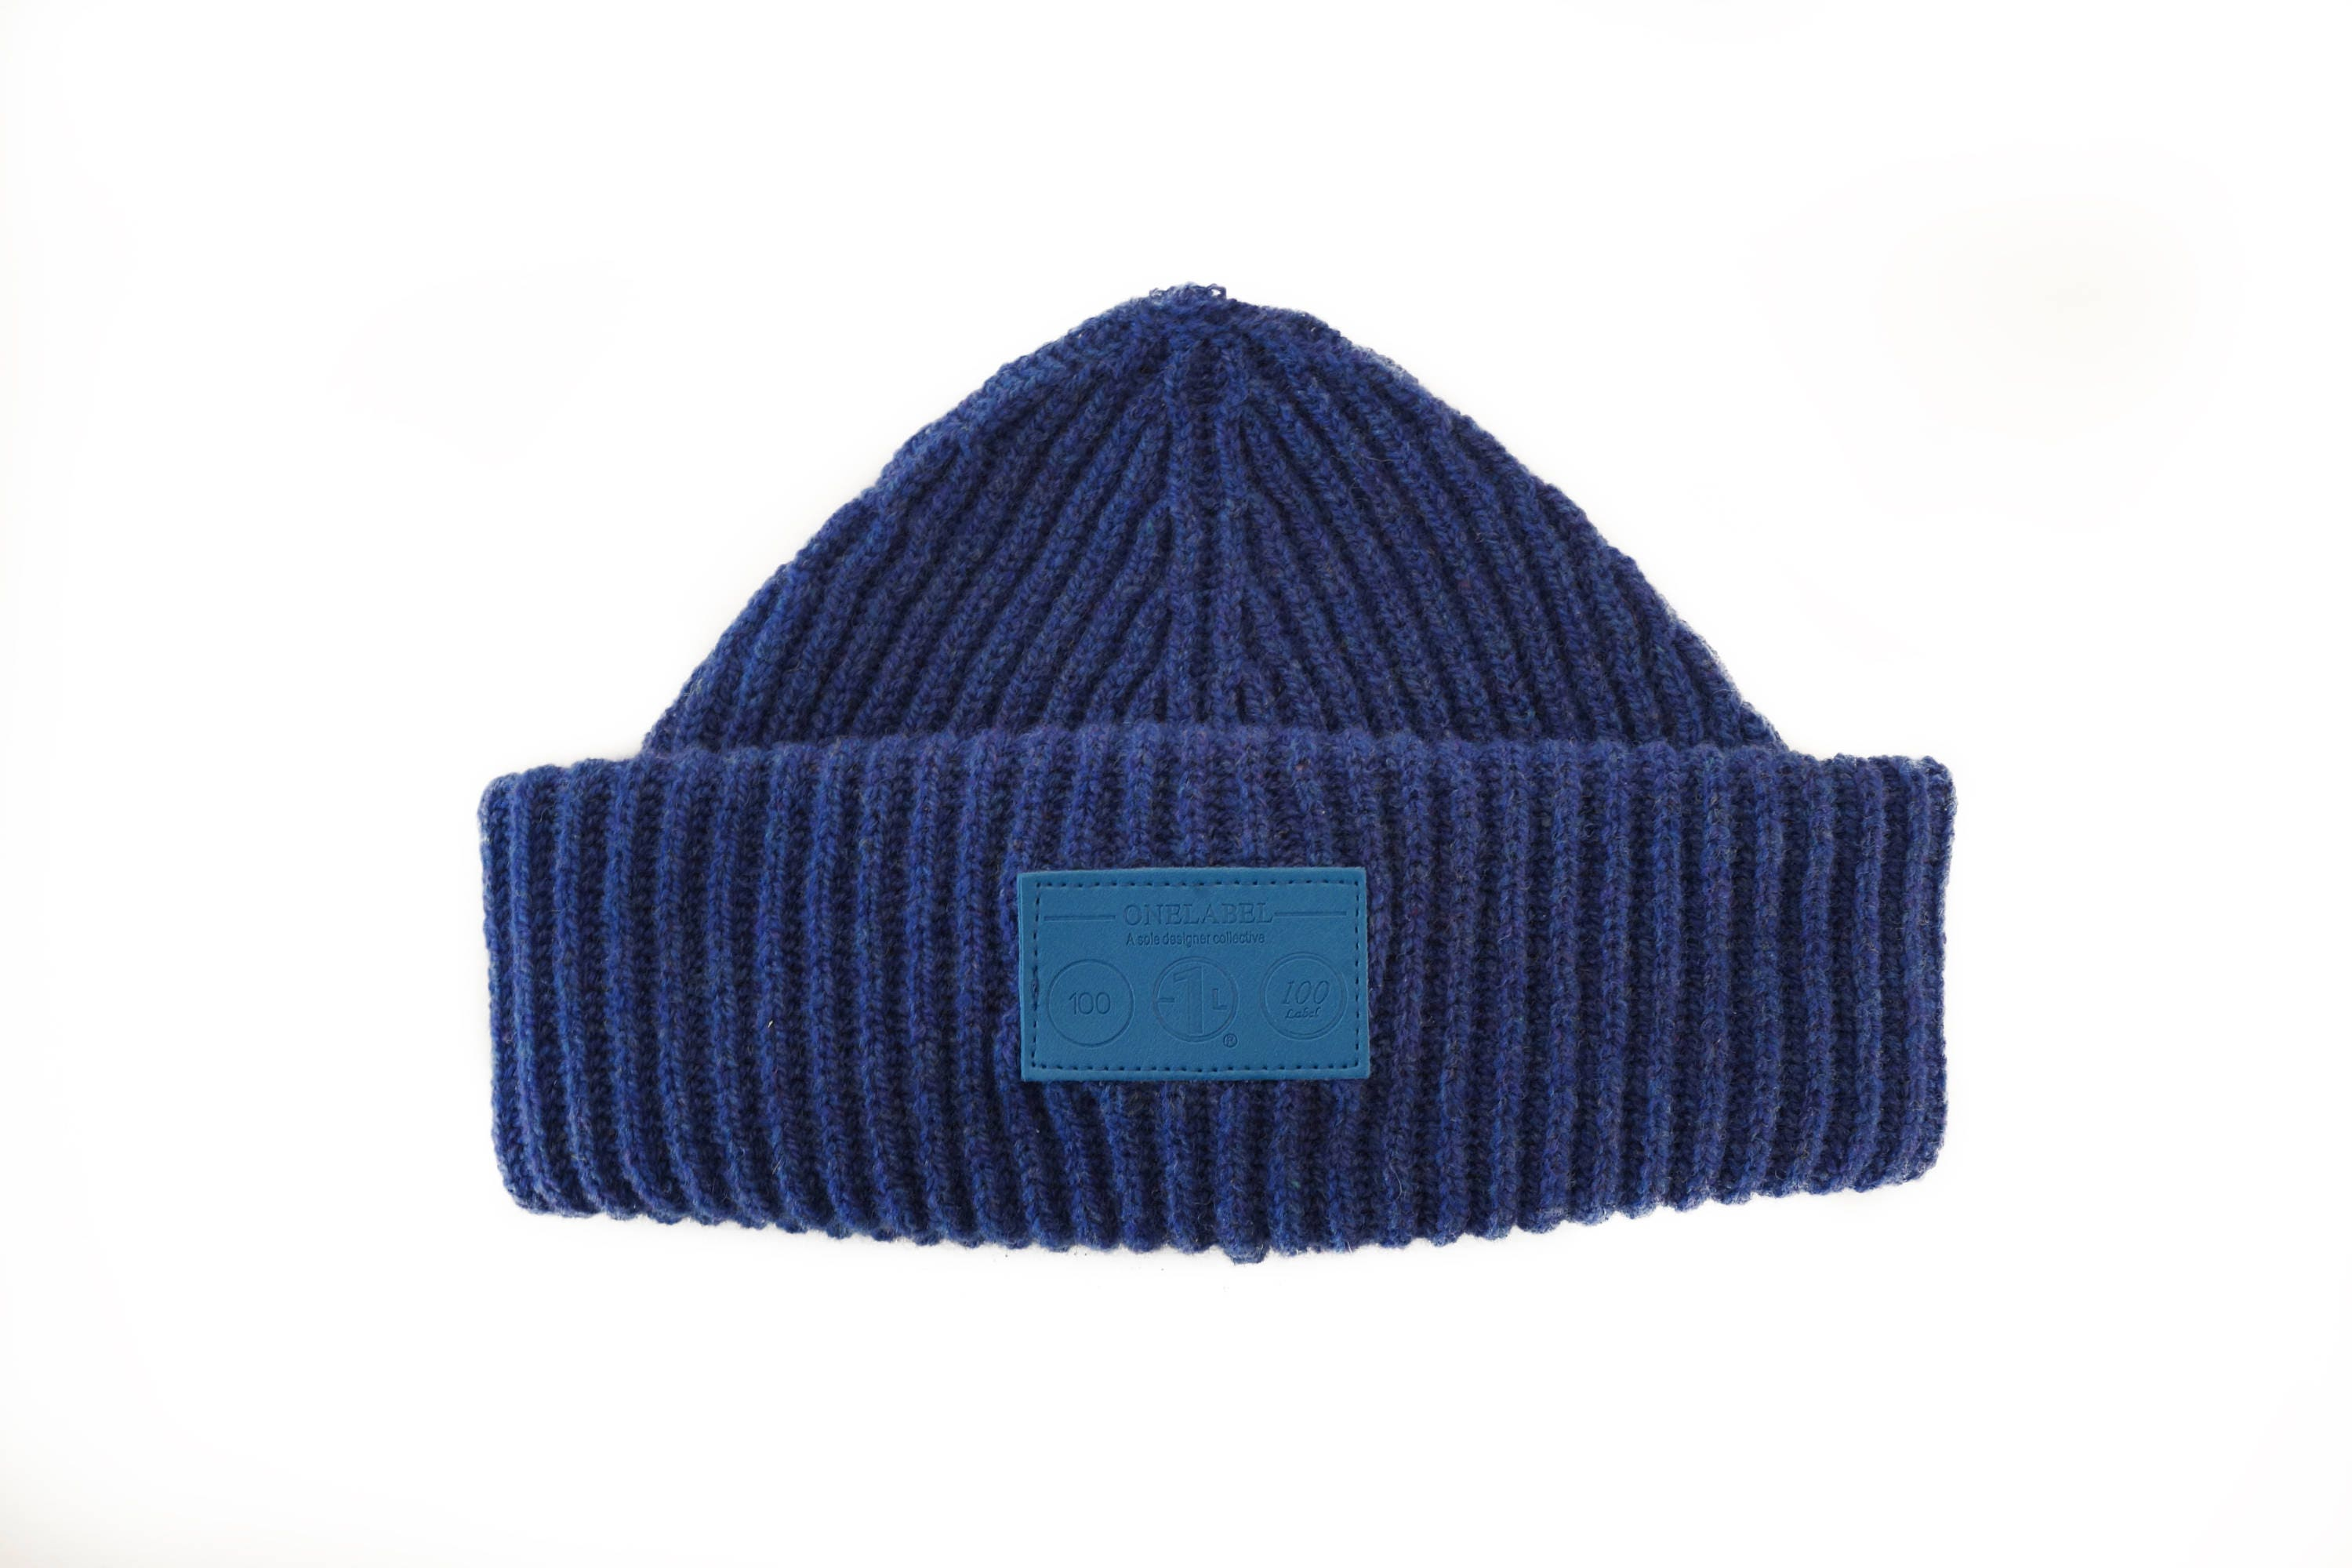 a390778c9a5 Tom Blue Season 1 Fisherman Beanie Hat by Onelabel® Made